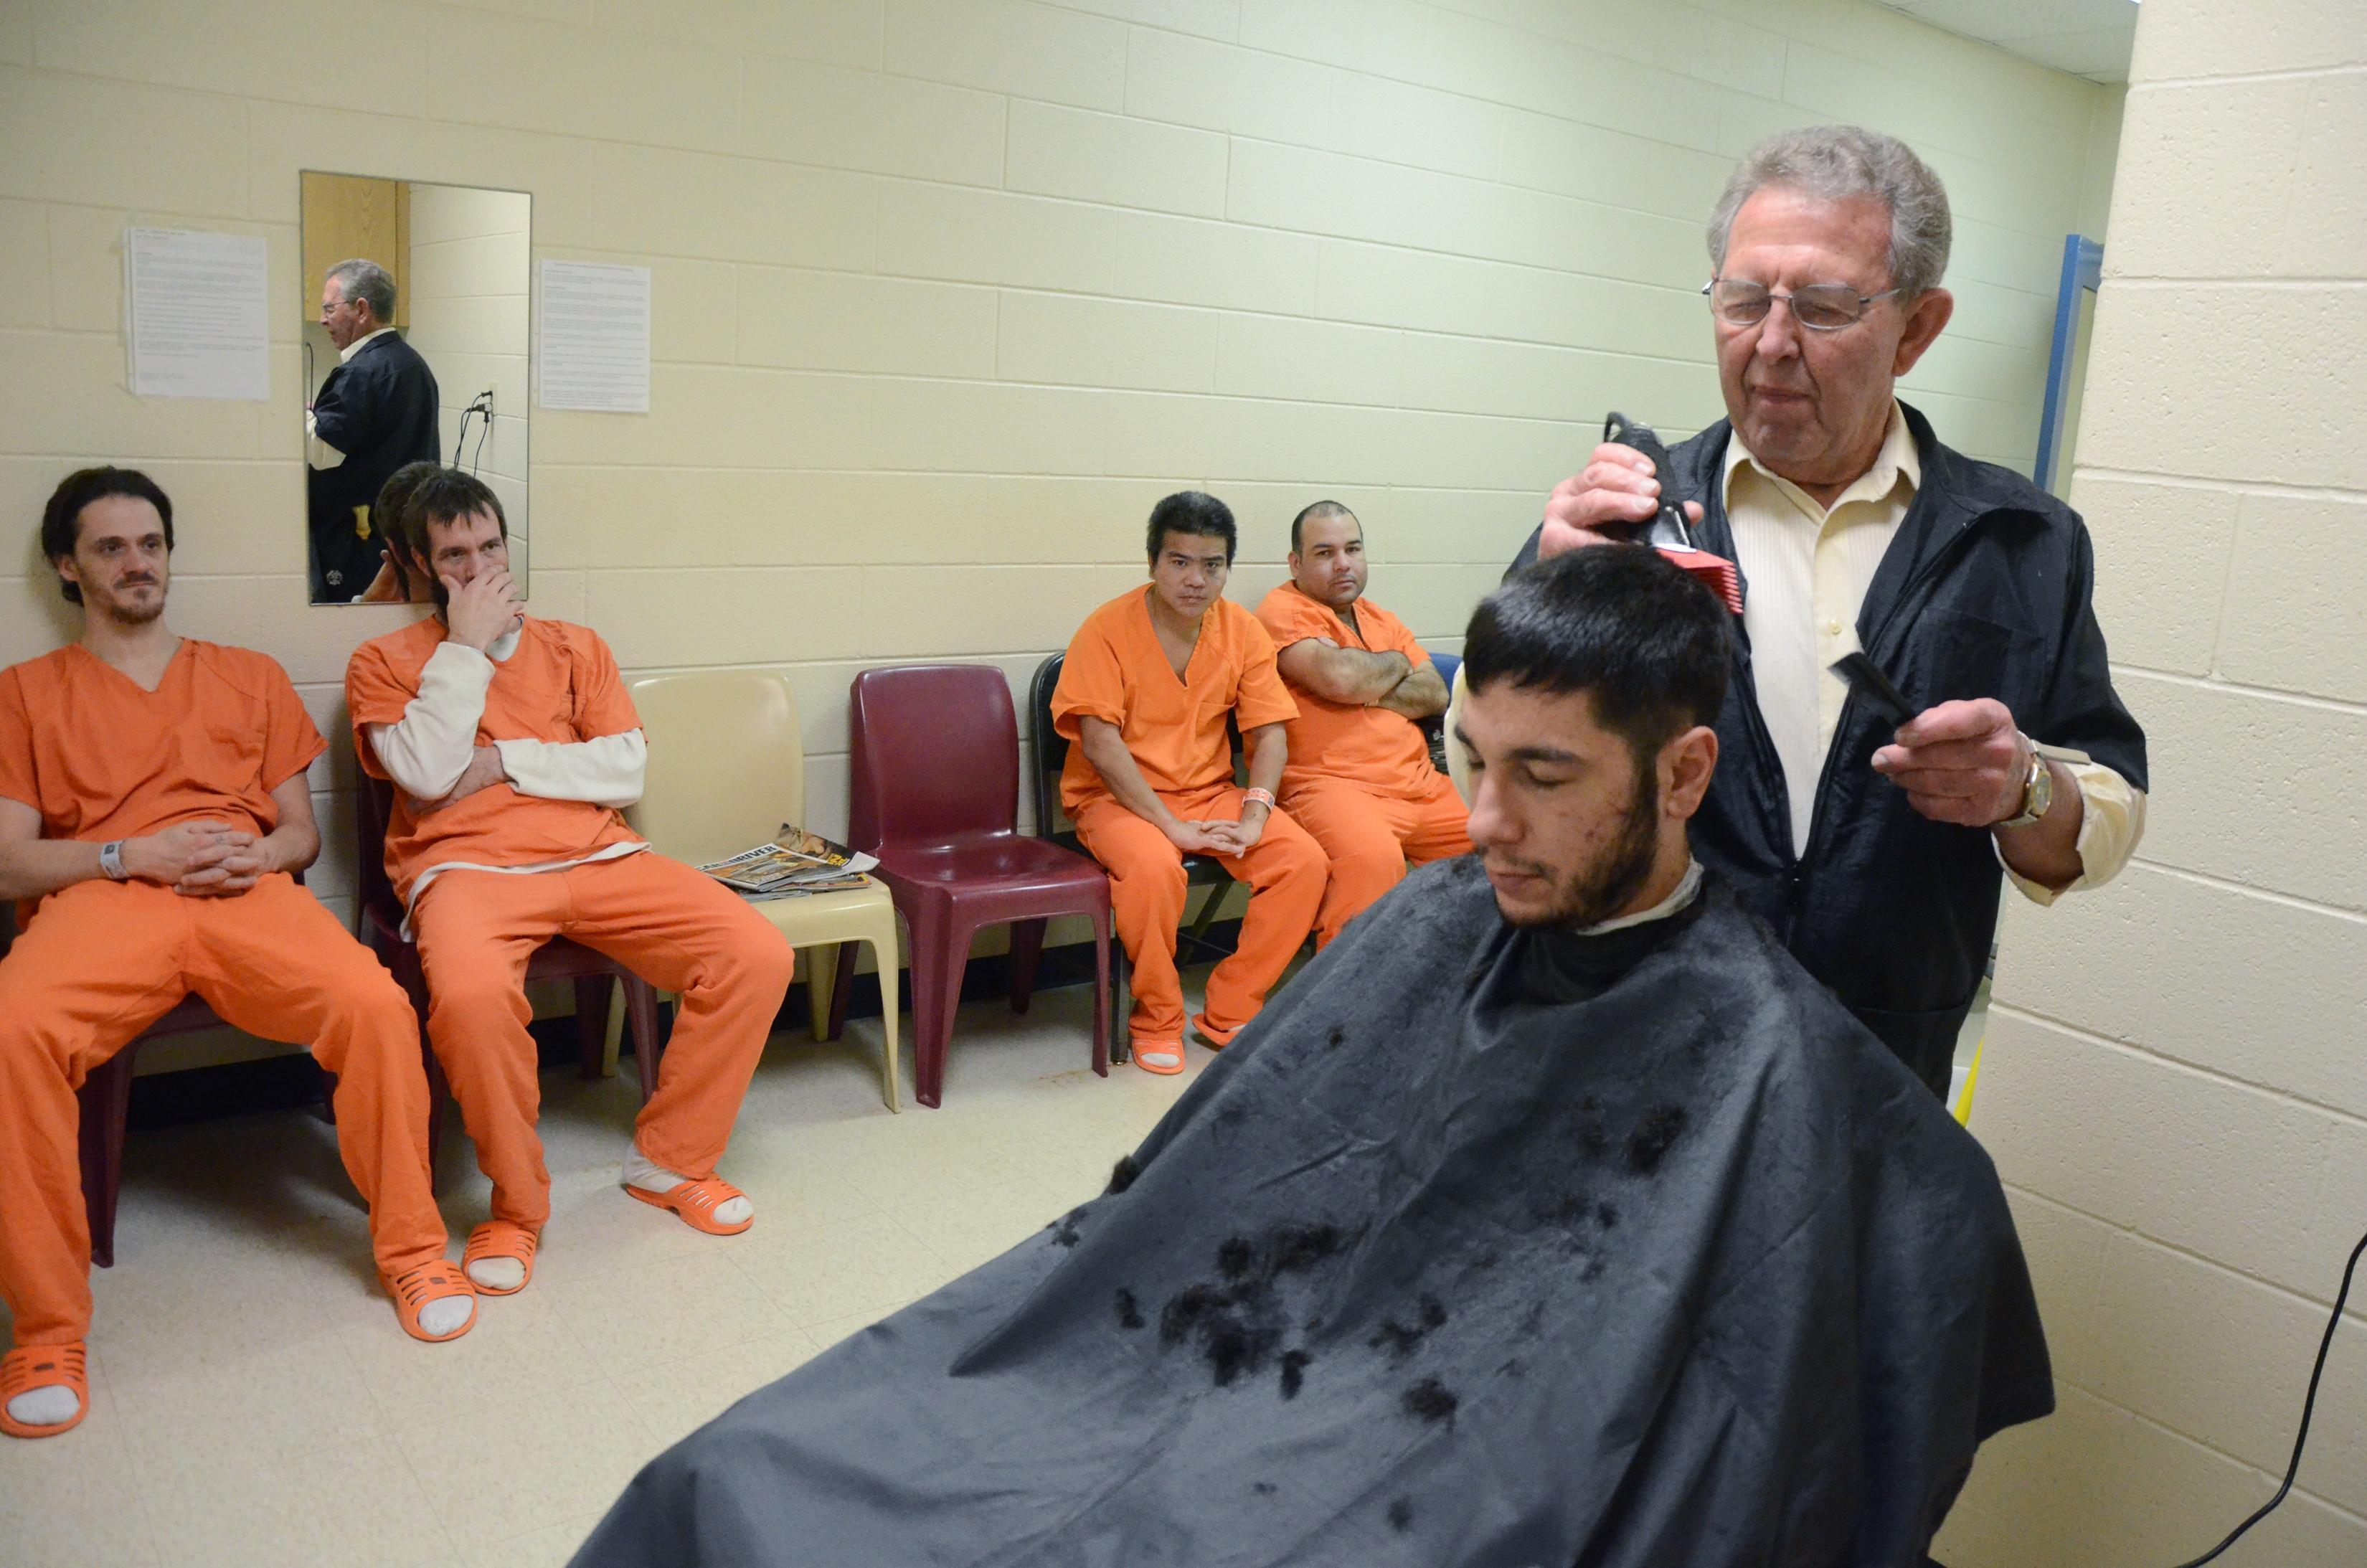 Battle Creek barber provides haircuts for inmates